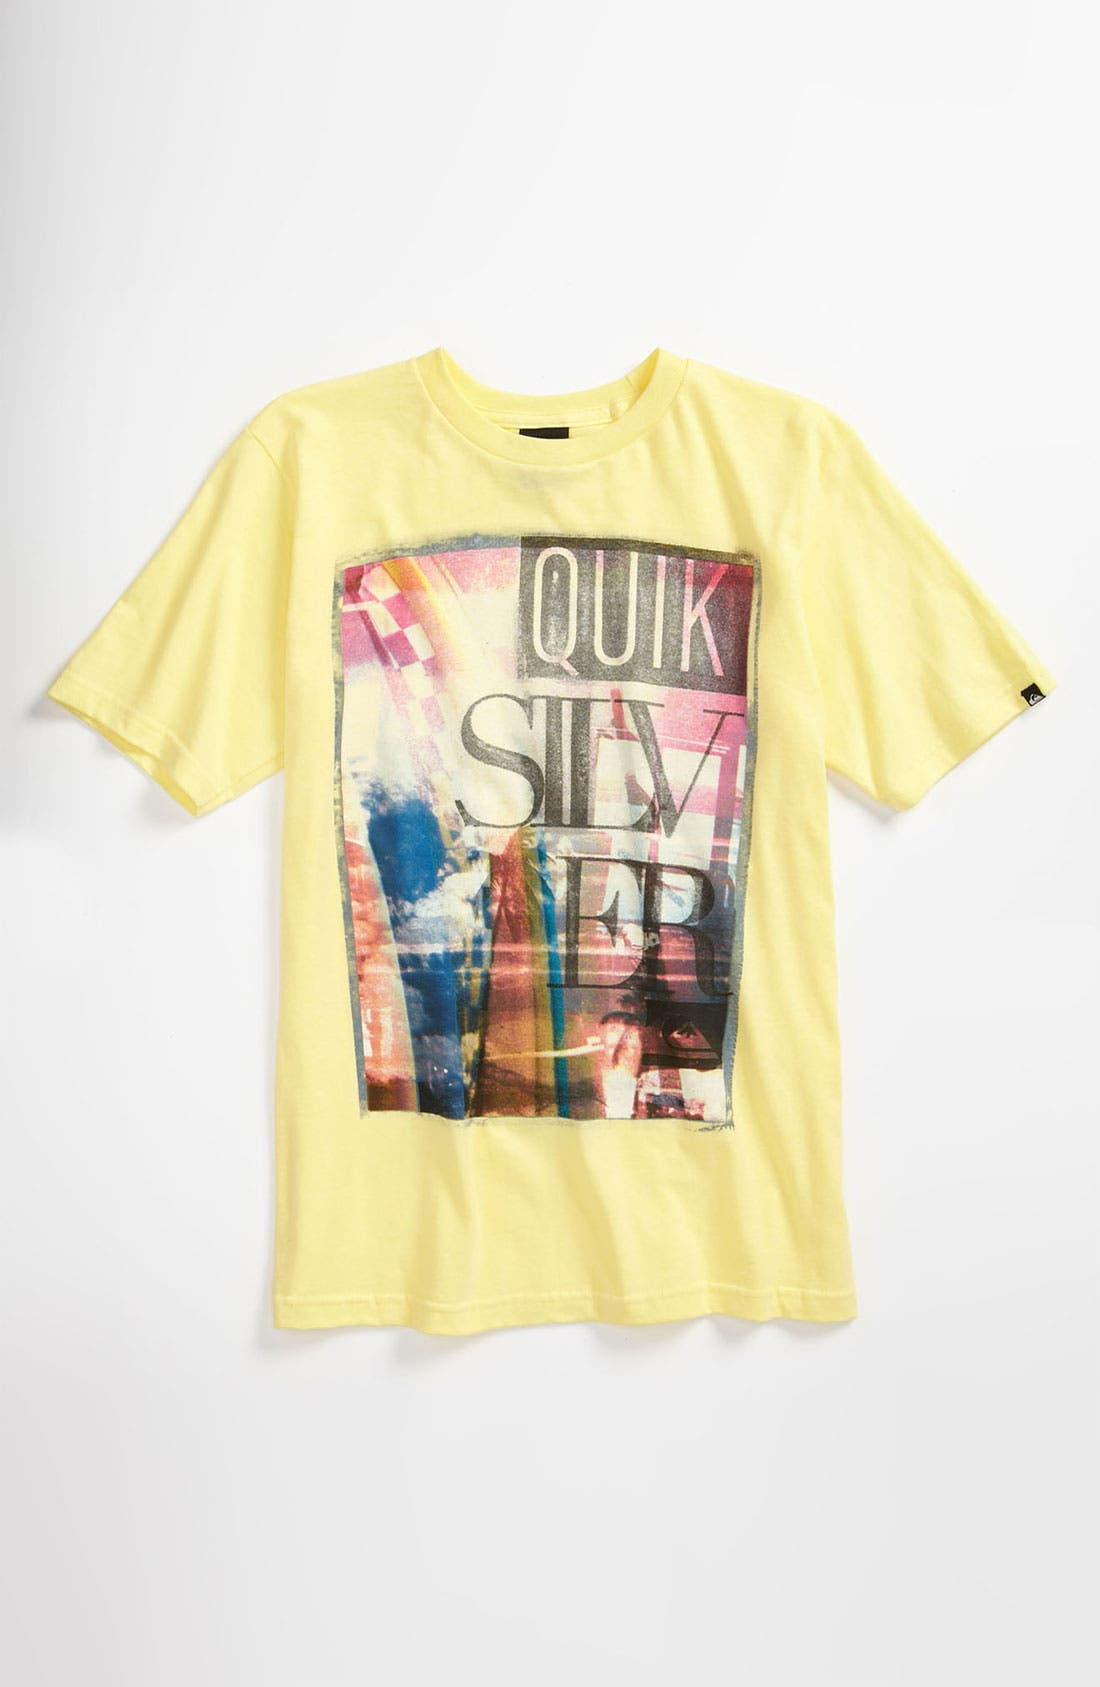 Alternate Image 1 Selected - Quiksilver 'Open Road' T-Shirt (Big Boys)